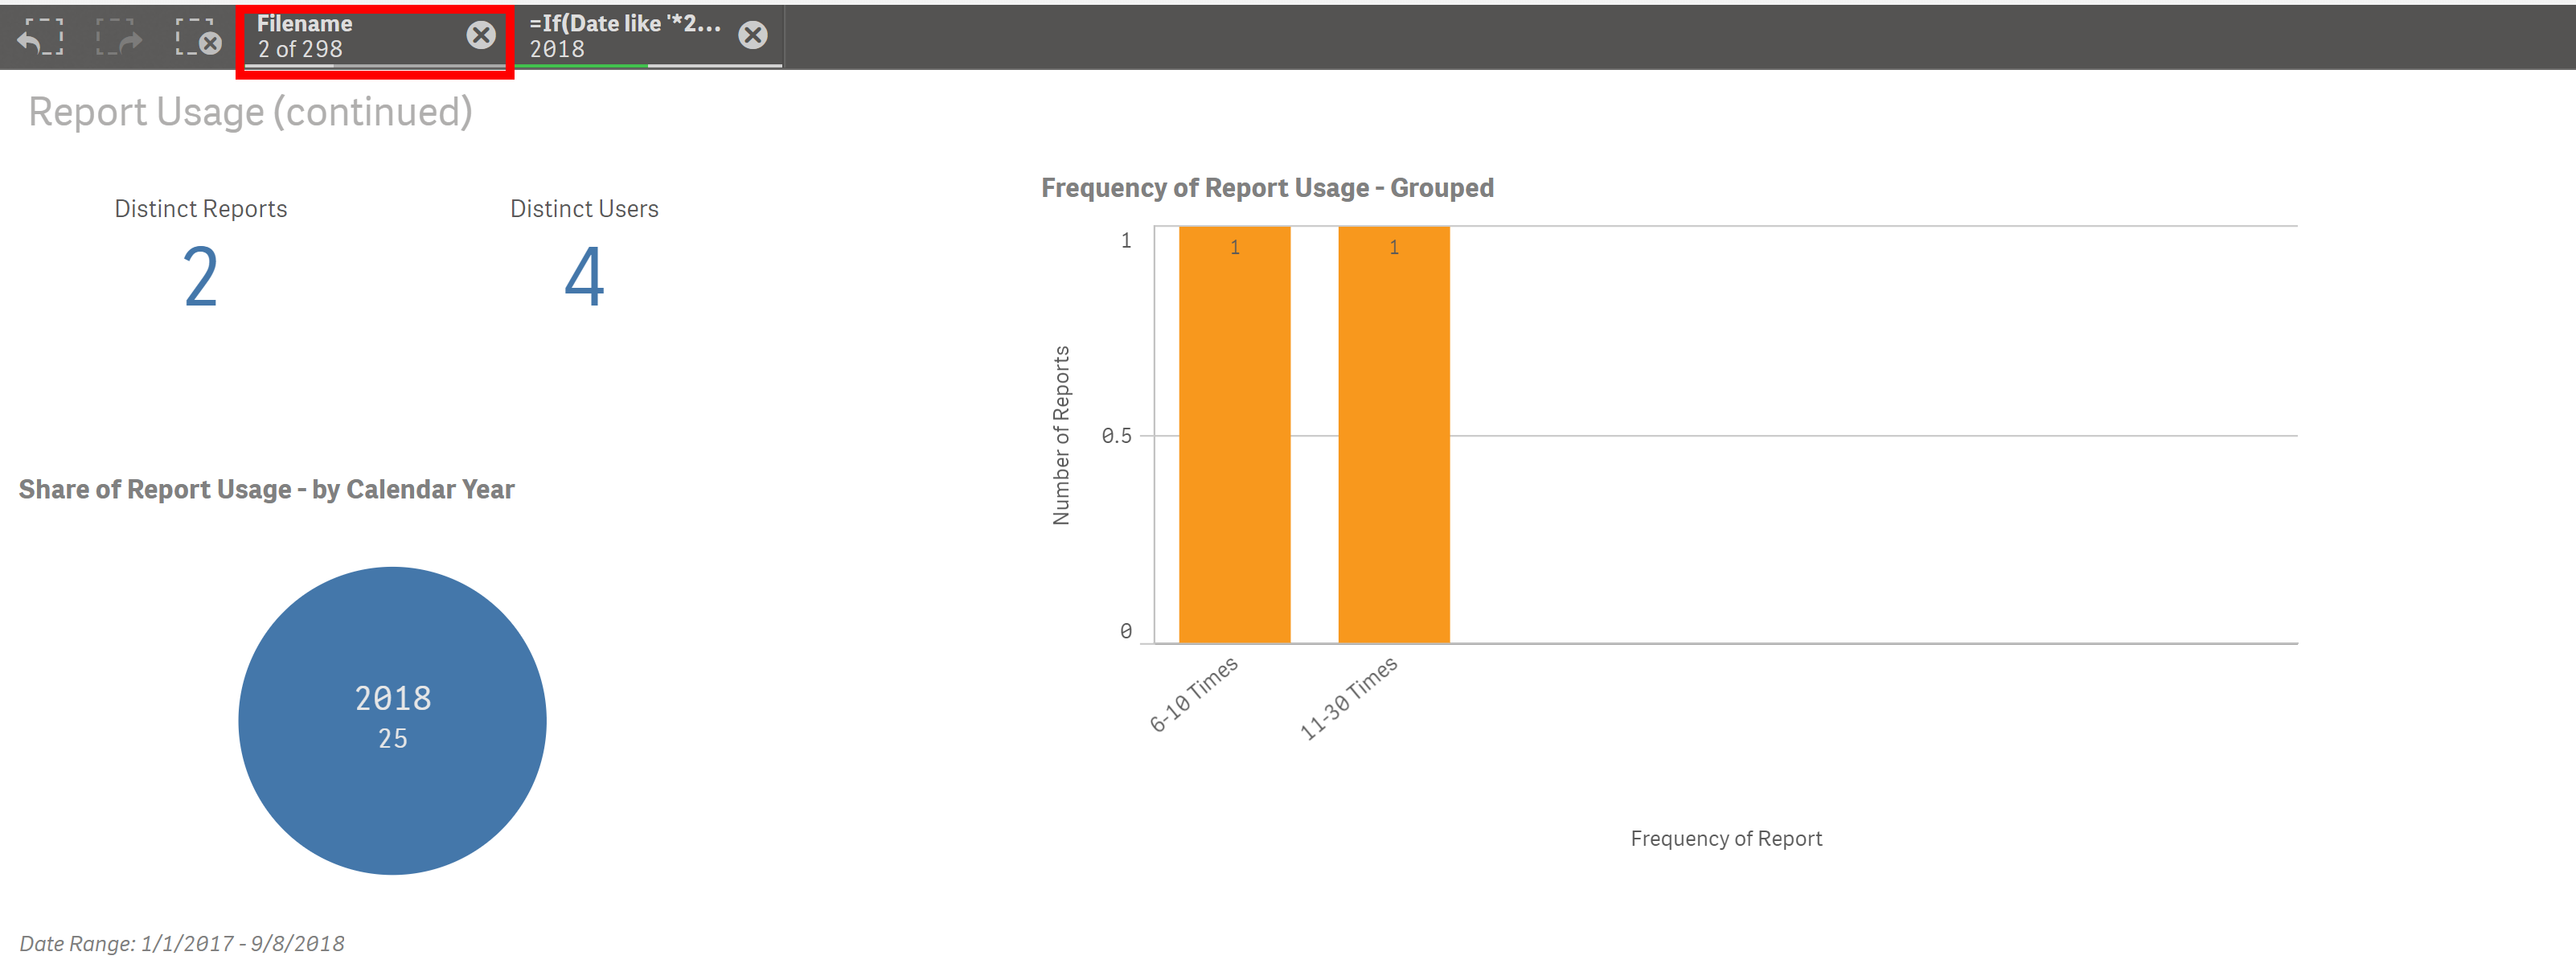 2018-10-17 14_30_40-Enterprise Reports Usage - Report Usage (continued) _ Sheets - Qlik Sense.png